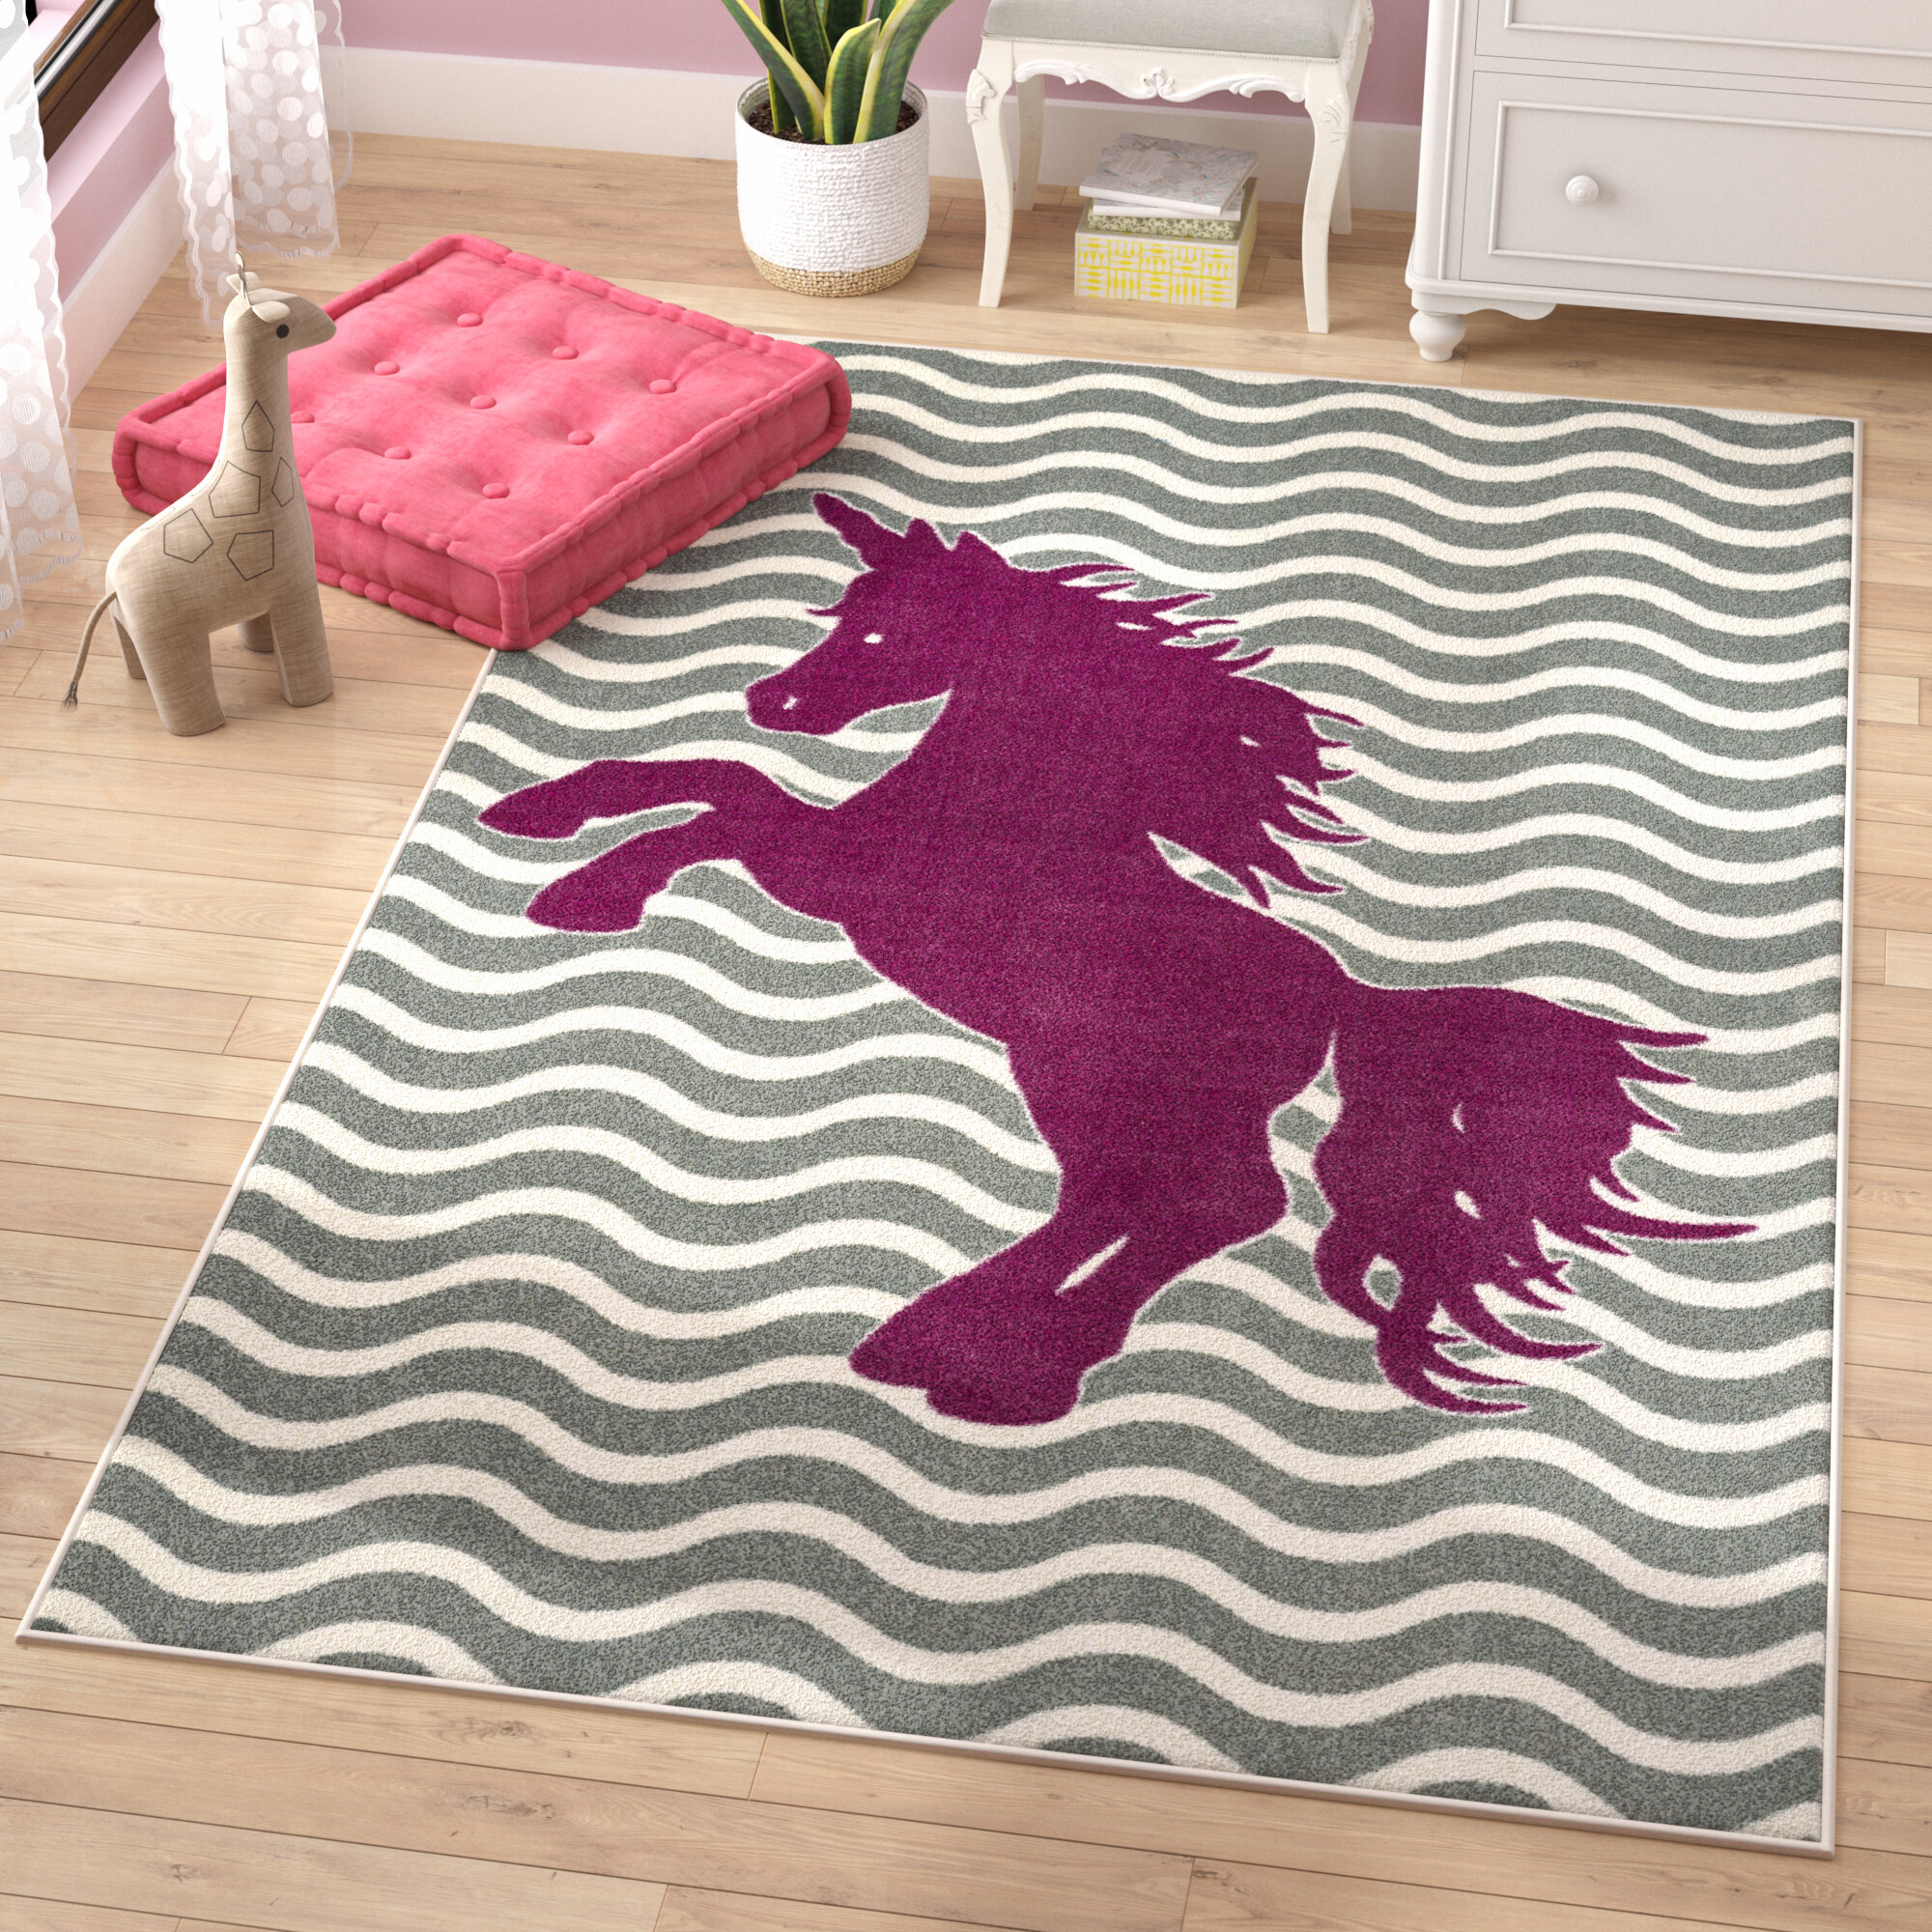 Viv Rae Heimbach Majestic Unicorn Royal Area Rug Reviews Wayfair